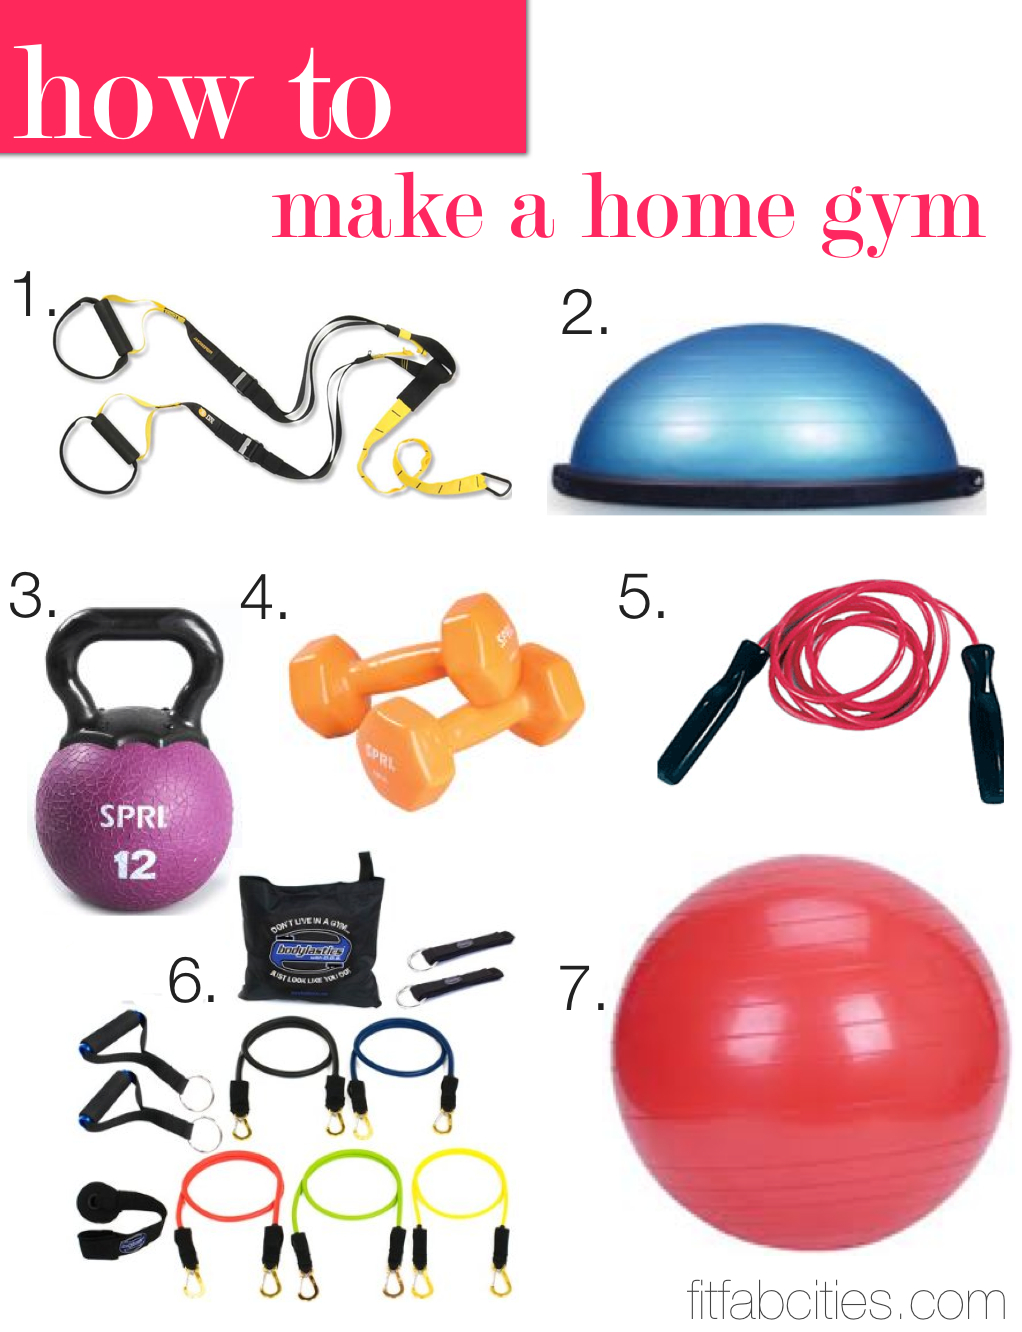 How To Make A Home Gym The 7 Best Fitness Accessories